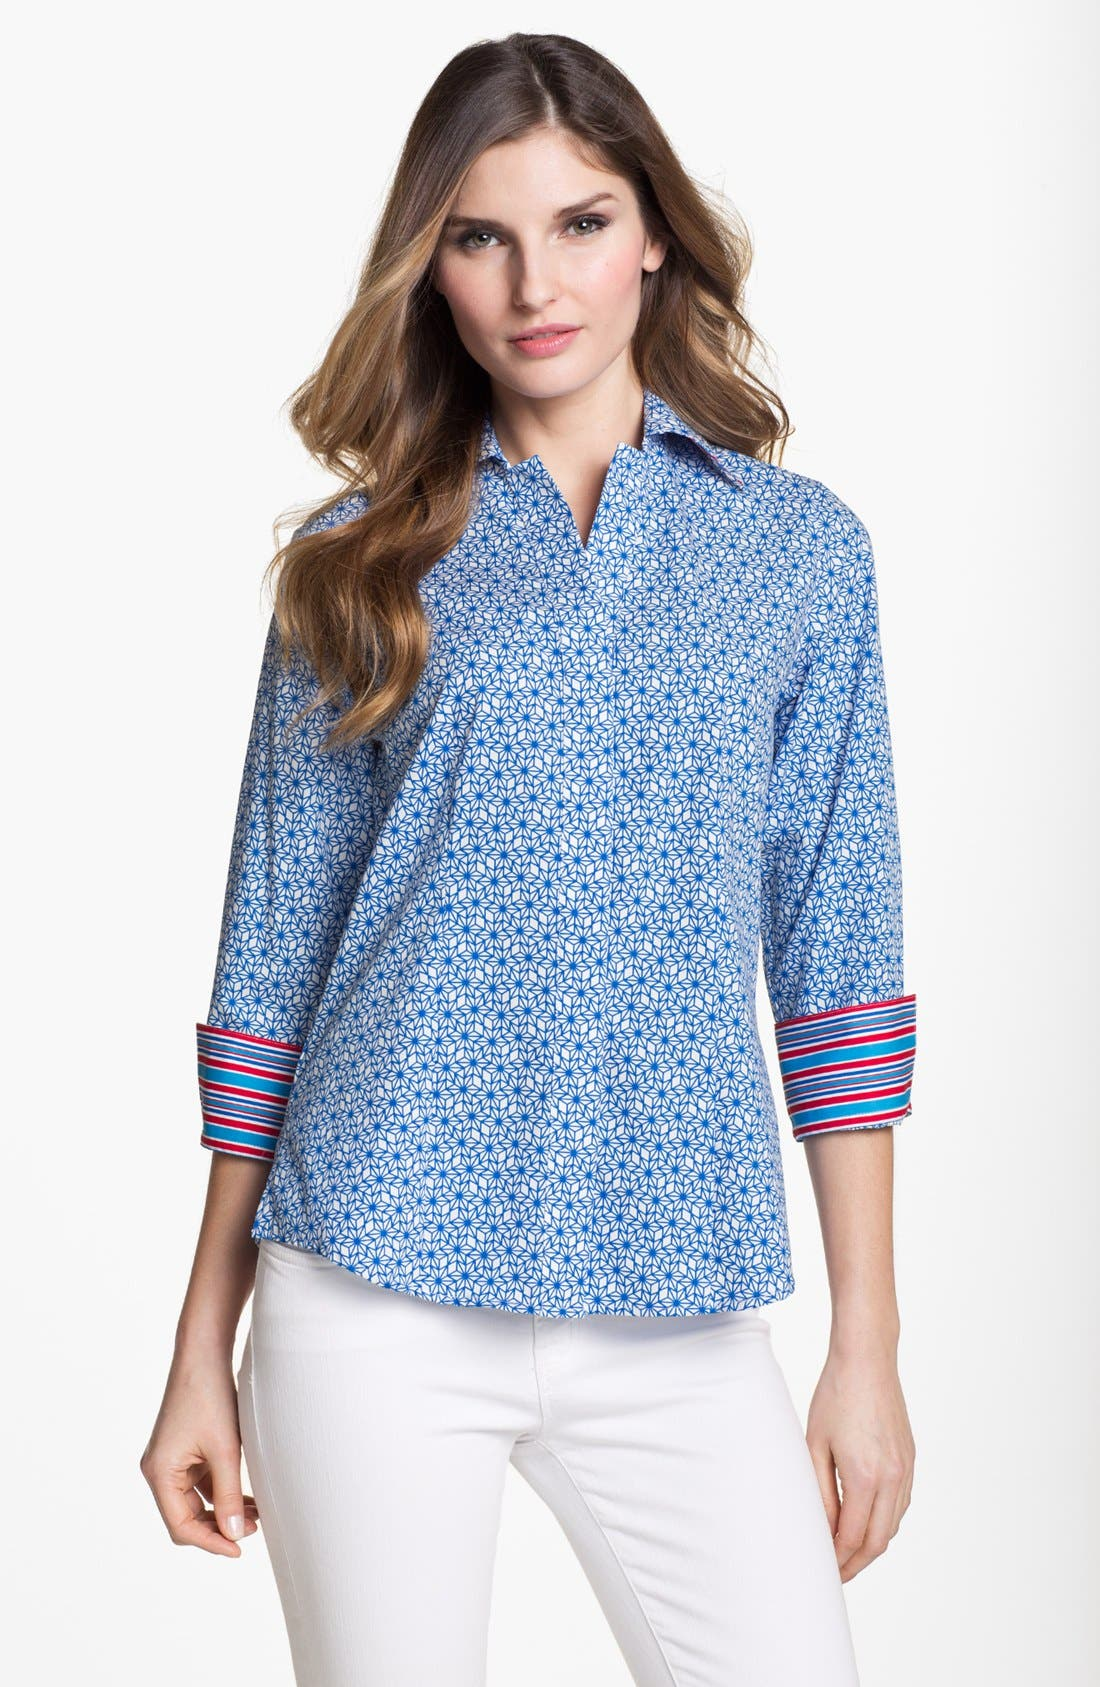 Alternate Image 1 Selected - Foxcroft 'Stars and Stripes' Shaped Shirt